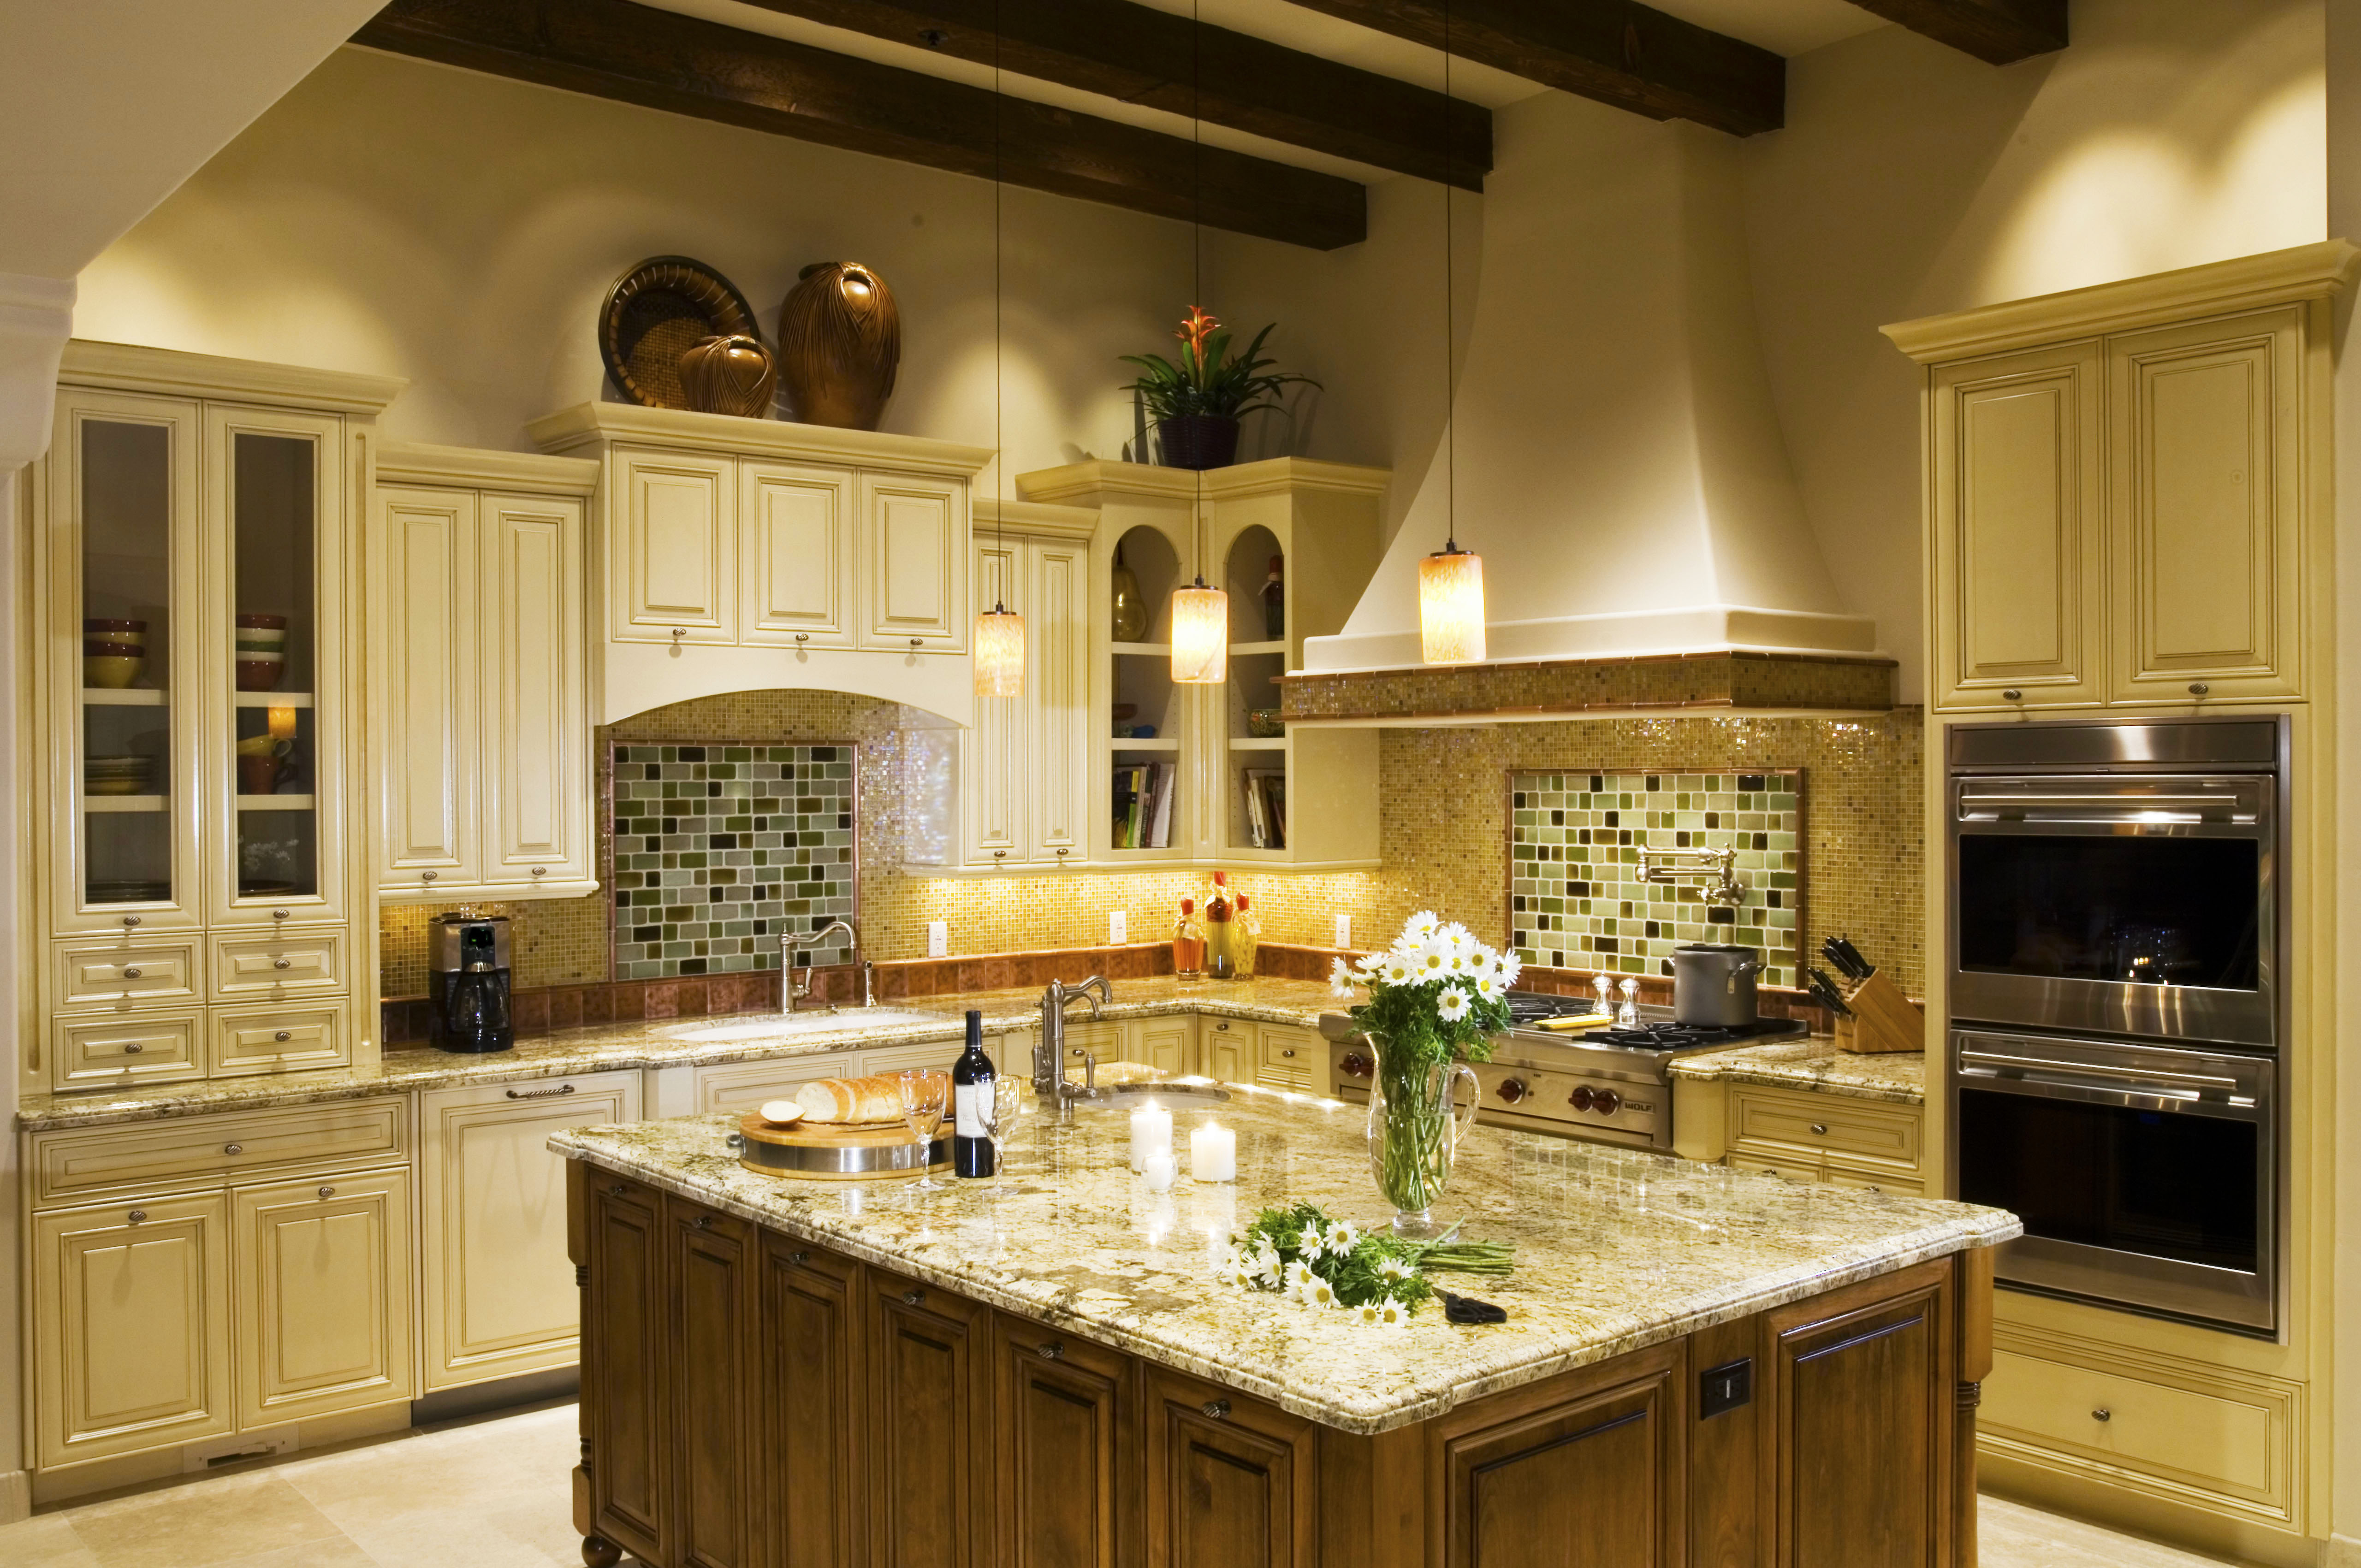 cost to remodel kitchen with glass pendant lamp over kitchen island with granite backsplash designs for average cost kitchen renovation nyc